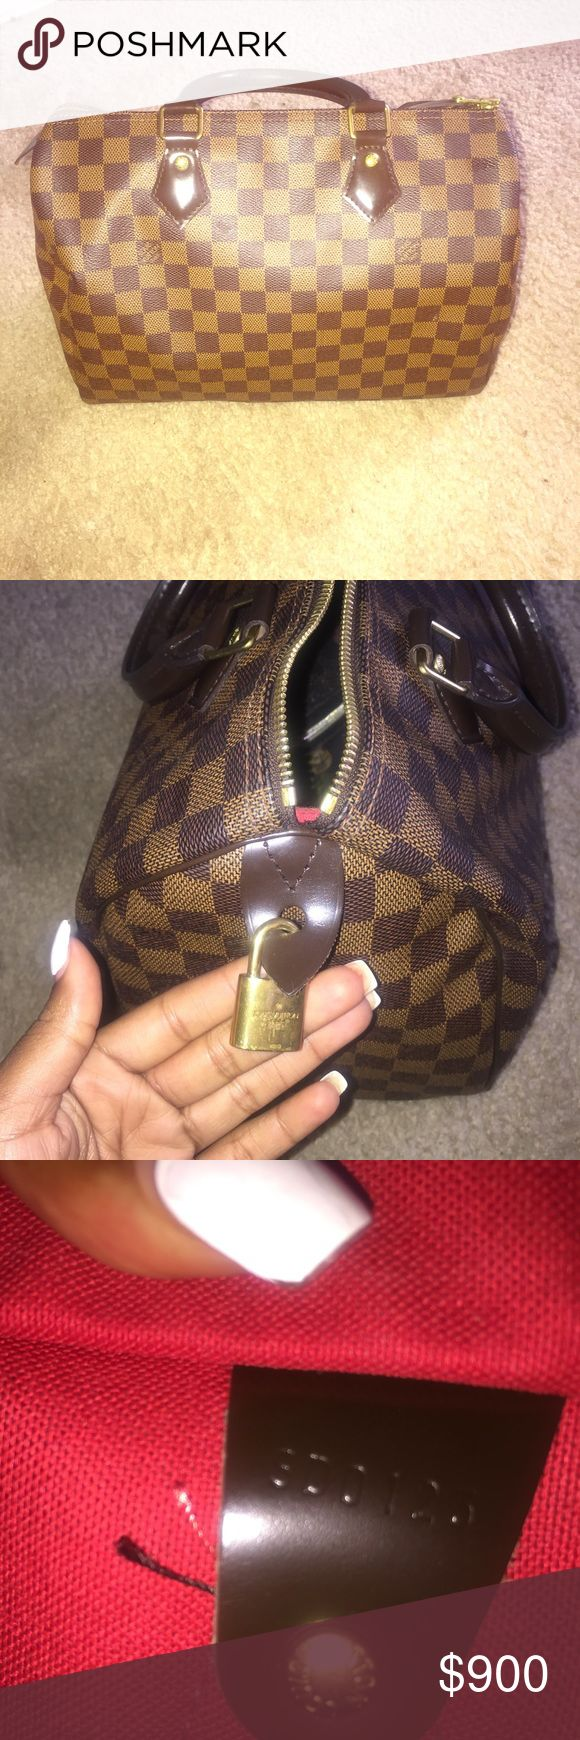 Louis  Vuitton speedy 30 Comes with box and keys Louis Vuitton Bags Totes